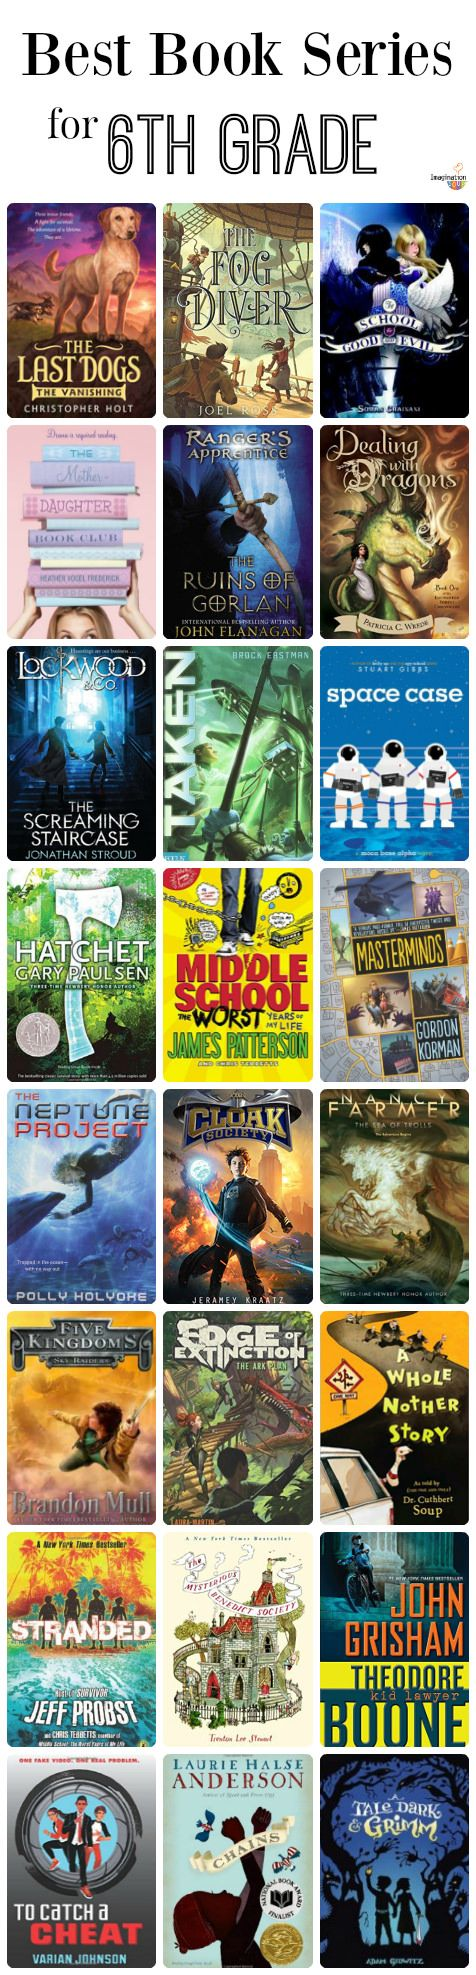 compelling book series for kids in the 6th grade (11 years old)